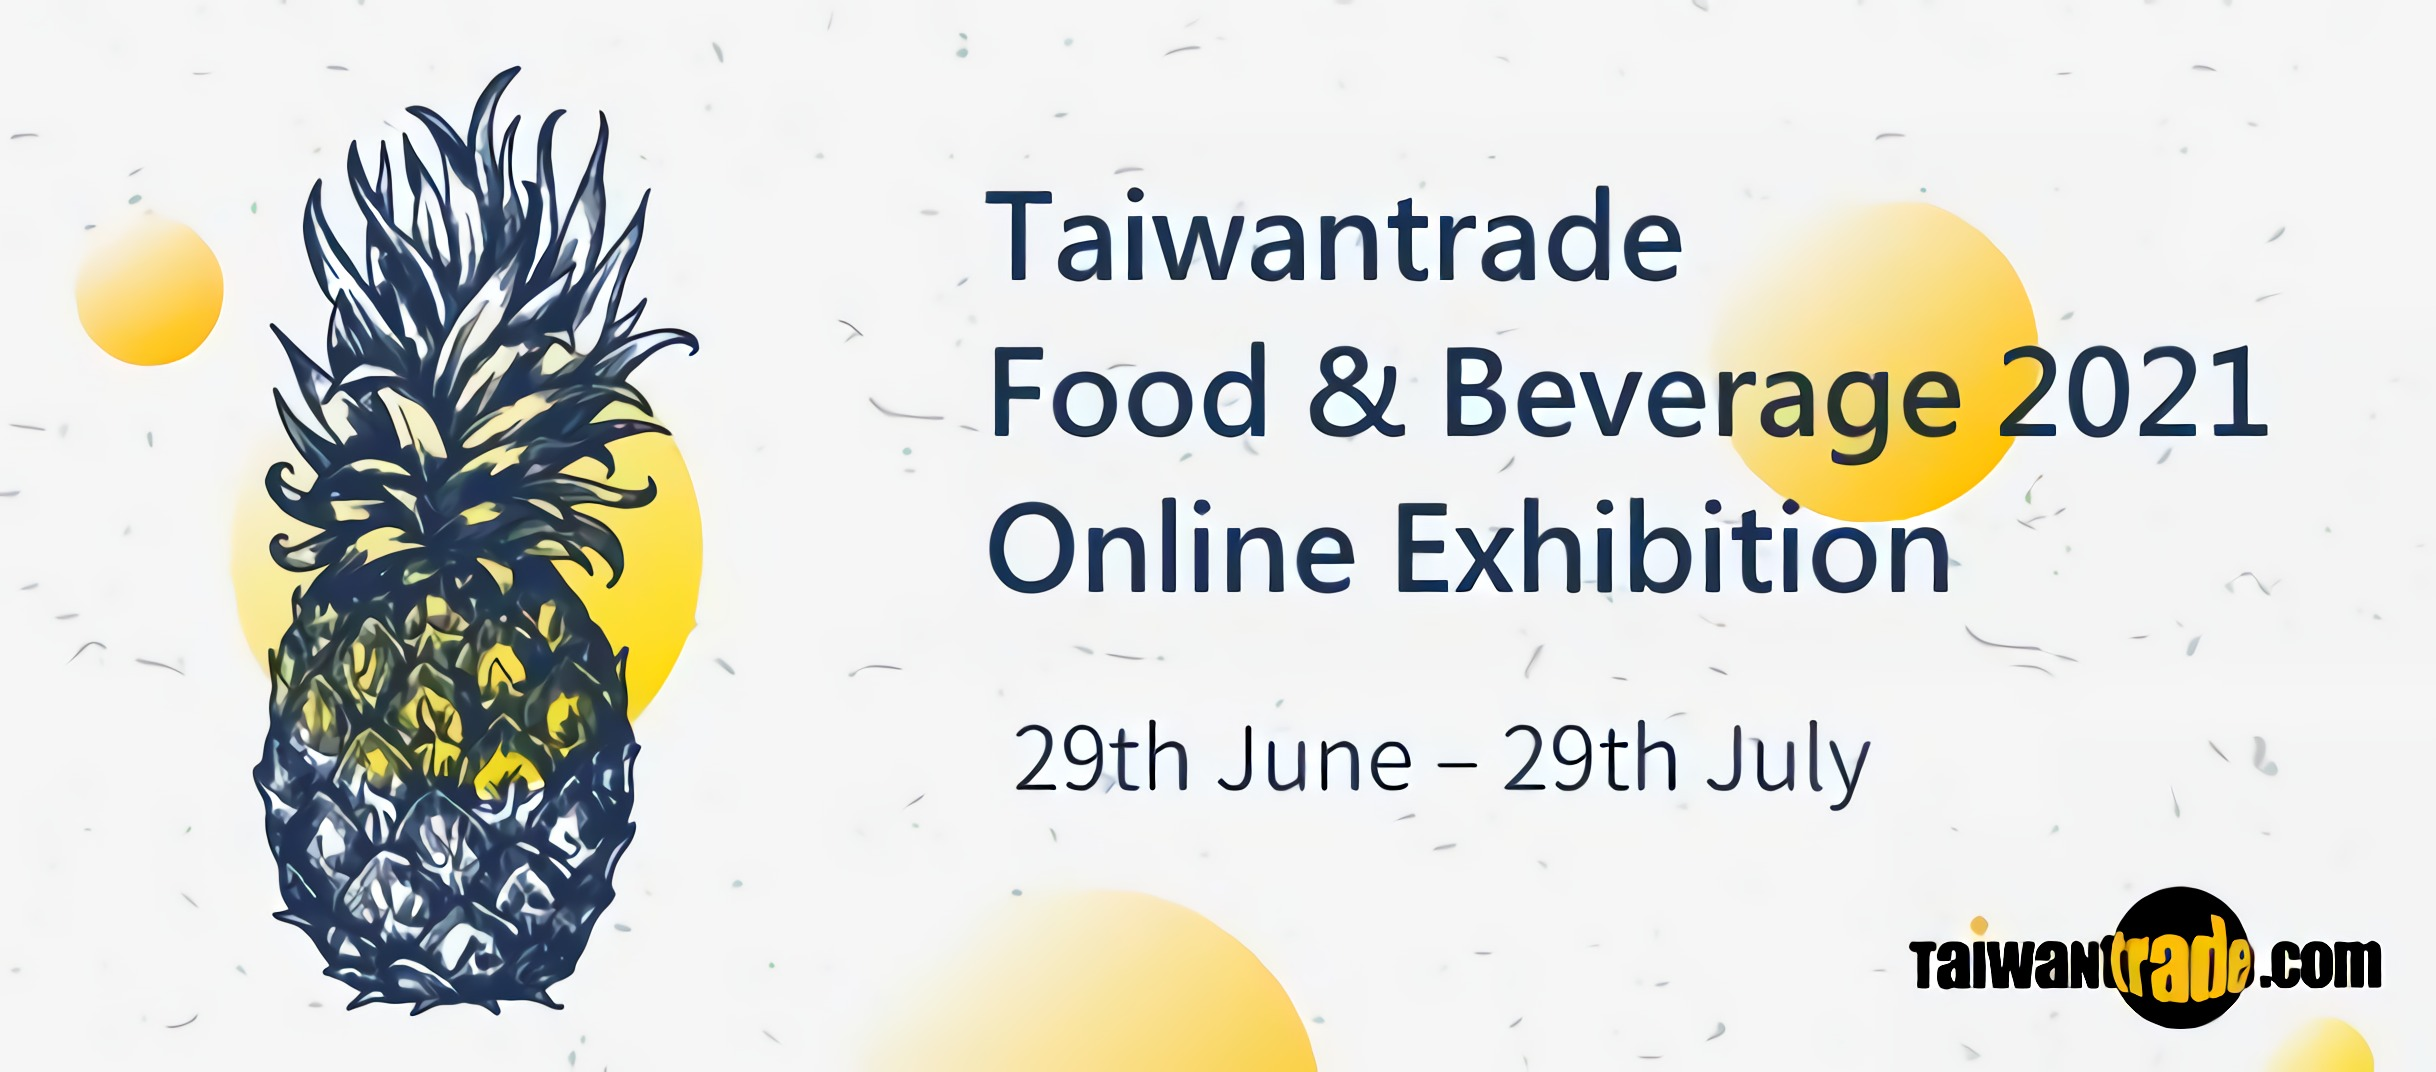 Taiwantrade.com showcases popular Taiwanese food beverage and pineapple products